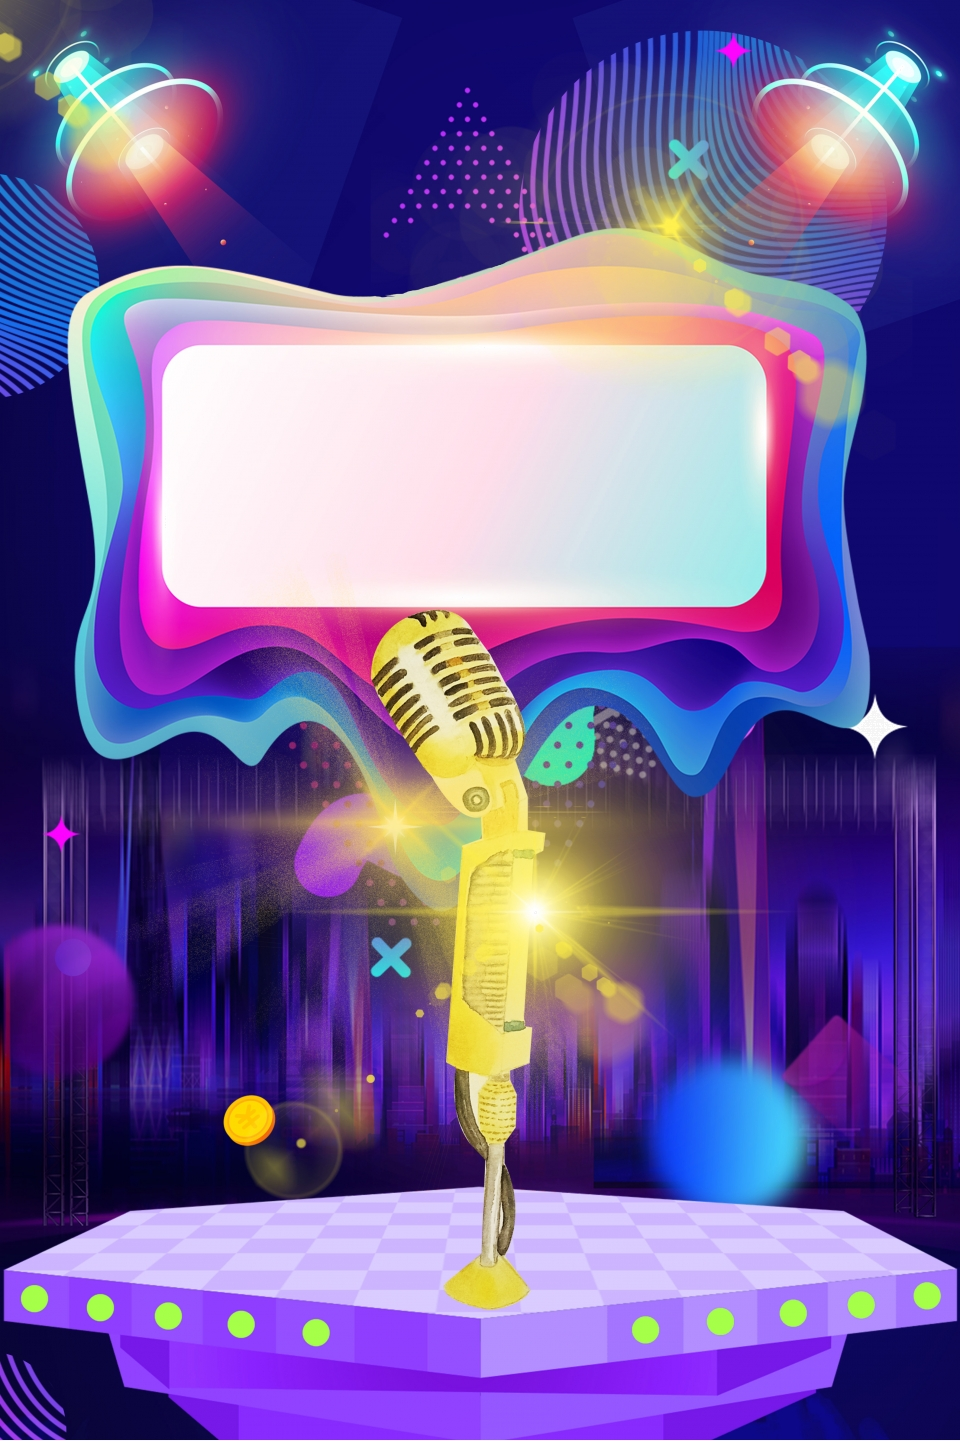 Singing Competition Poster Background Material Singing Competitions Concerts Microphones Background Image For Free Download,Free T Shirt Design Maker